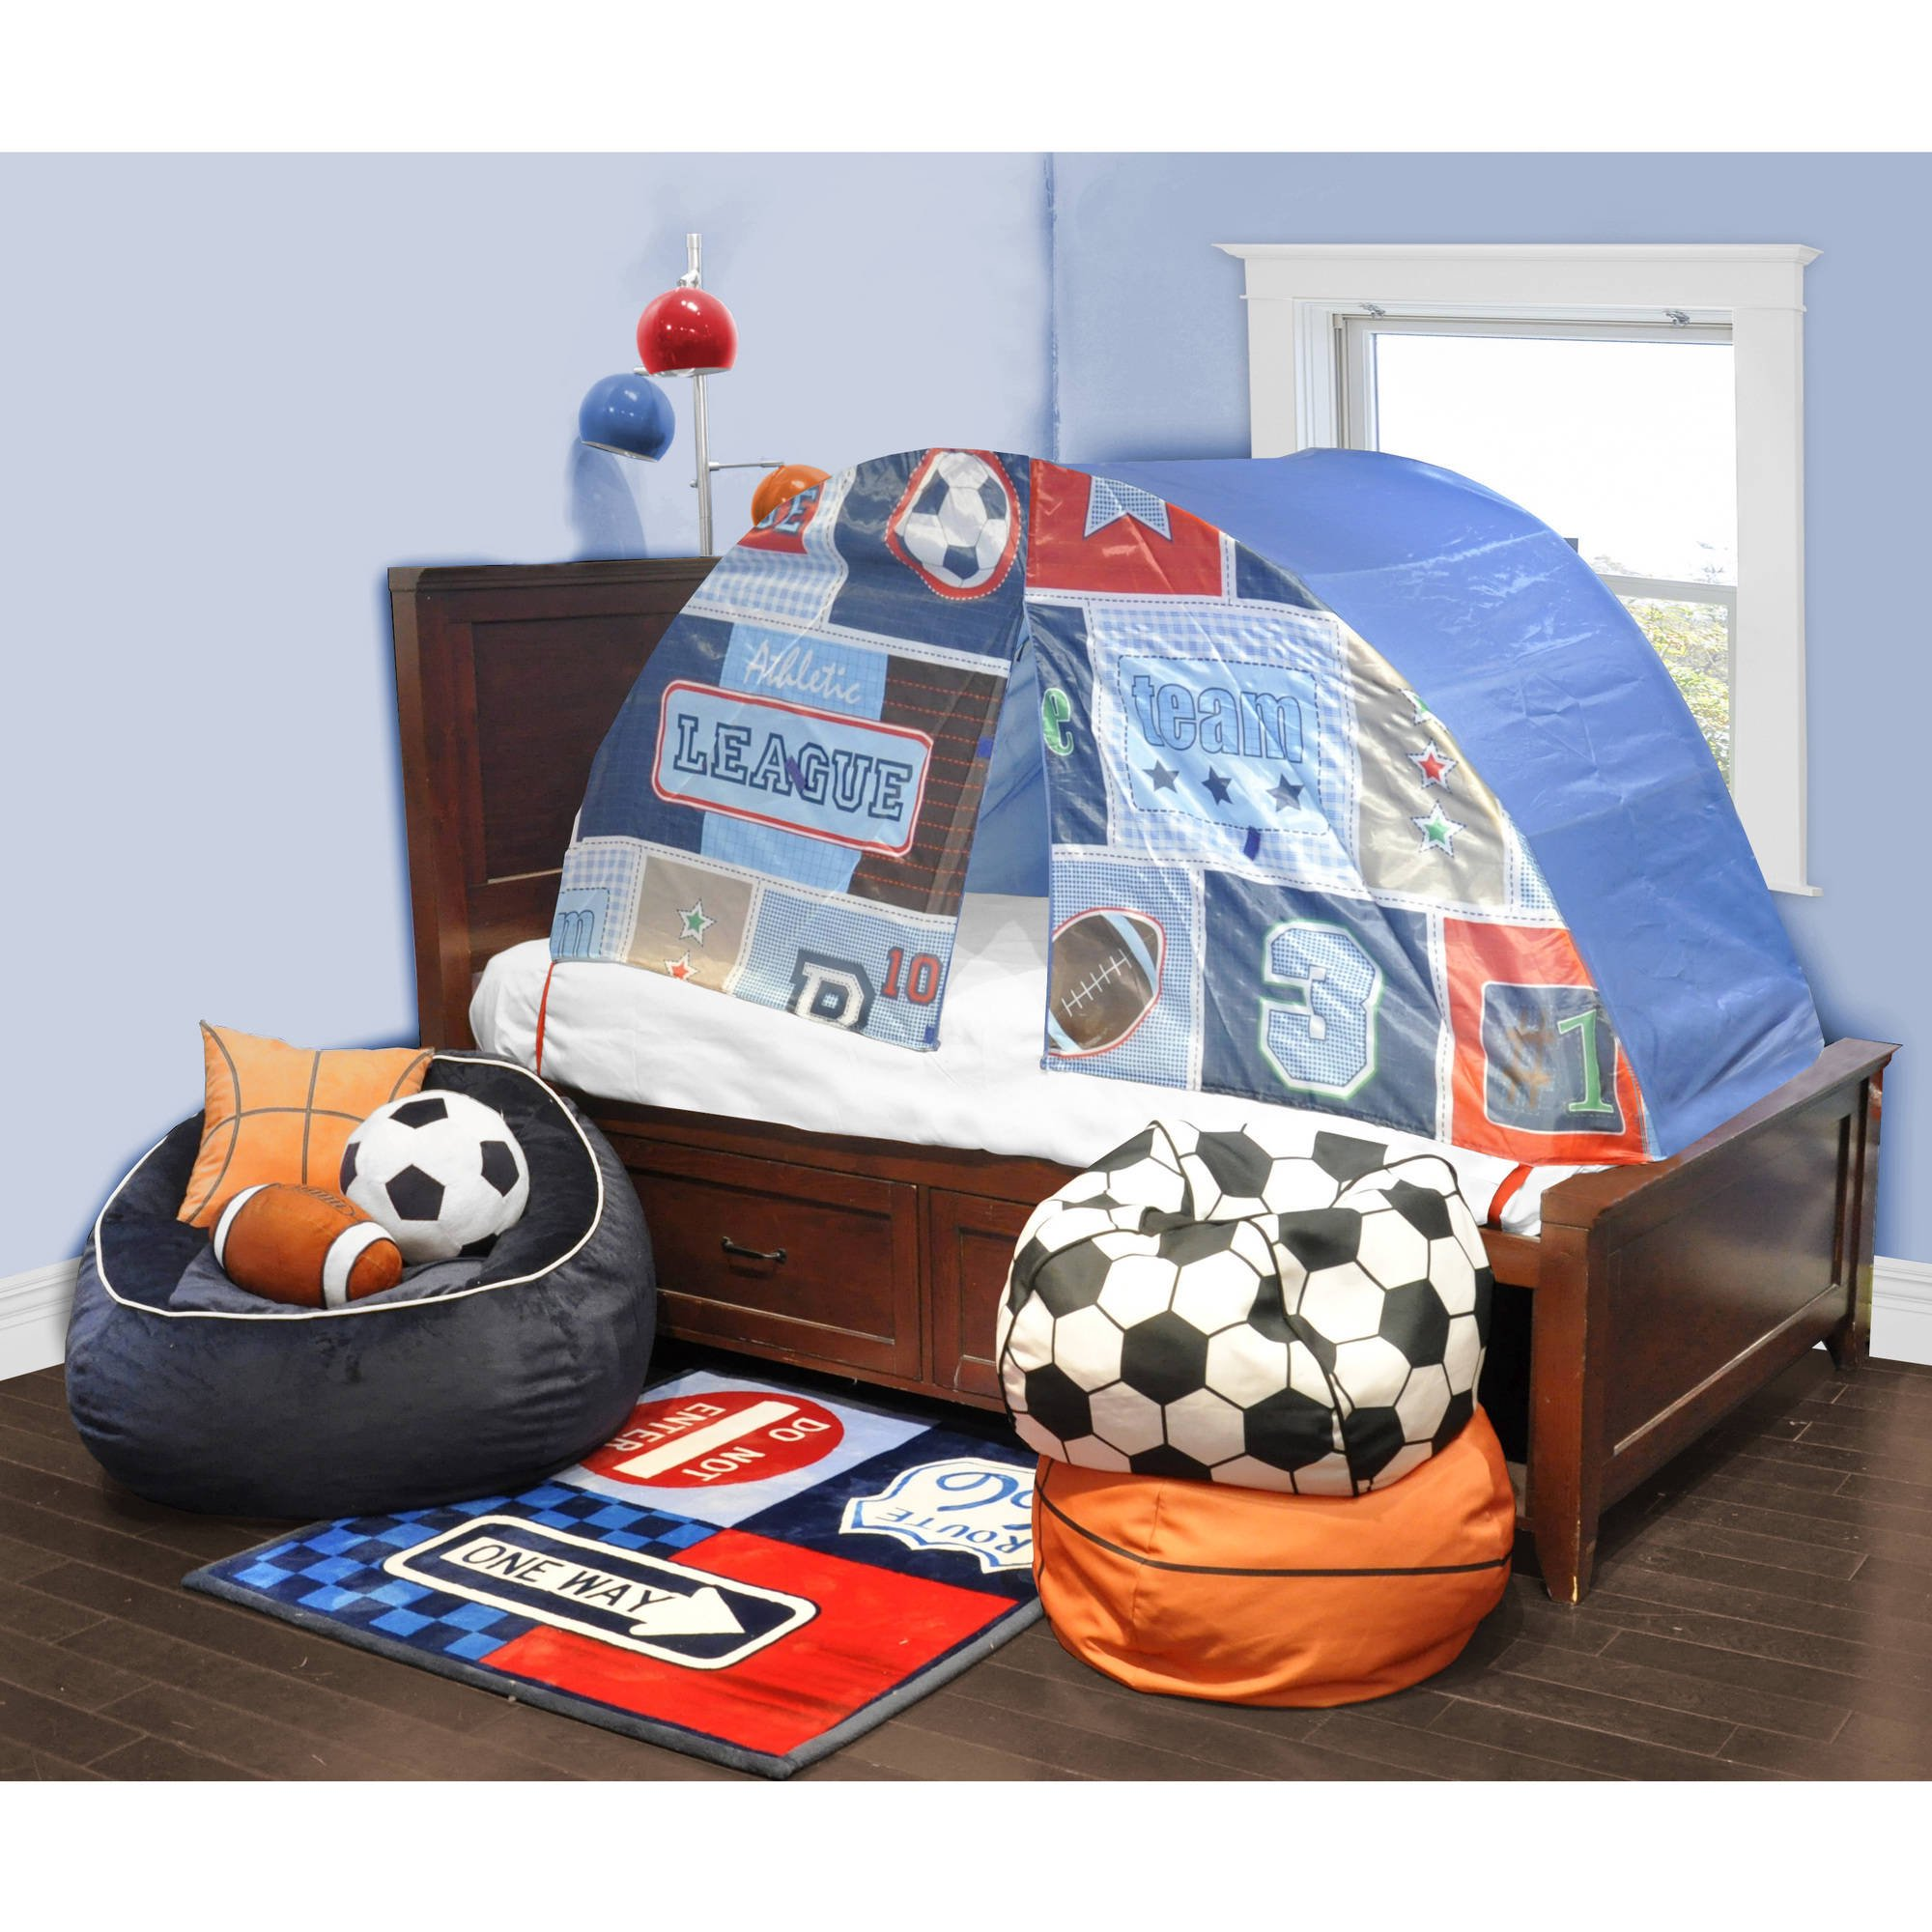 Kids Scene Sports Play Bed Tent  sc 1 st  Walmart & Kids Scene Sports Play Bed Tent - Walmart.com